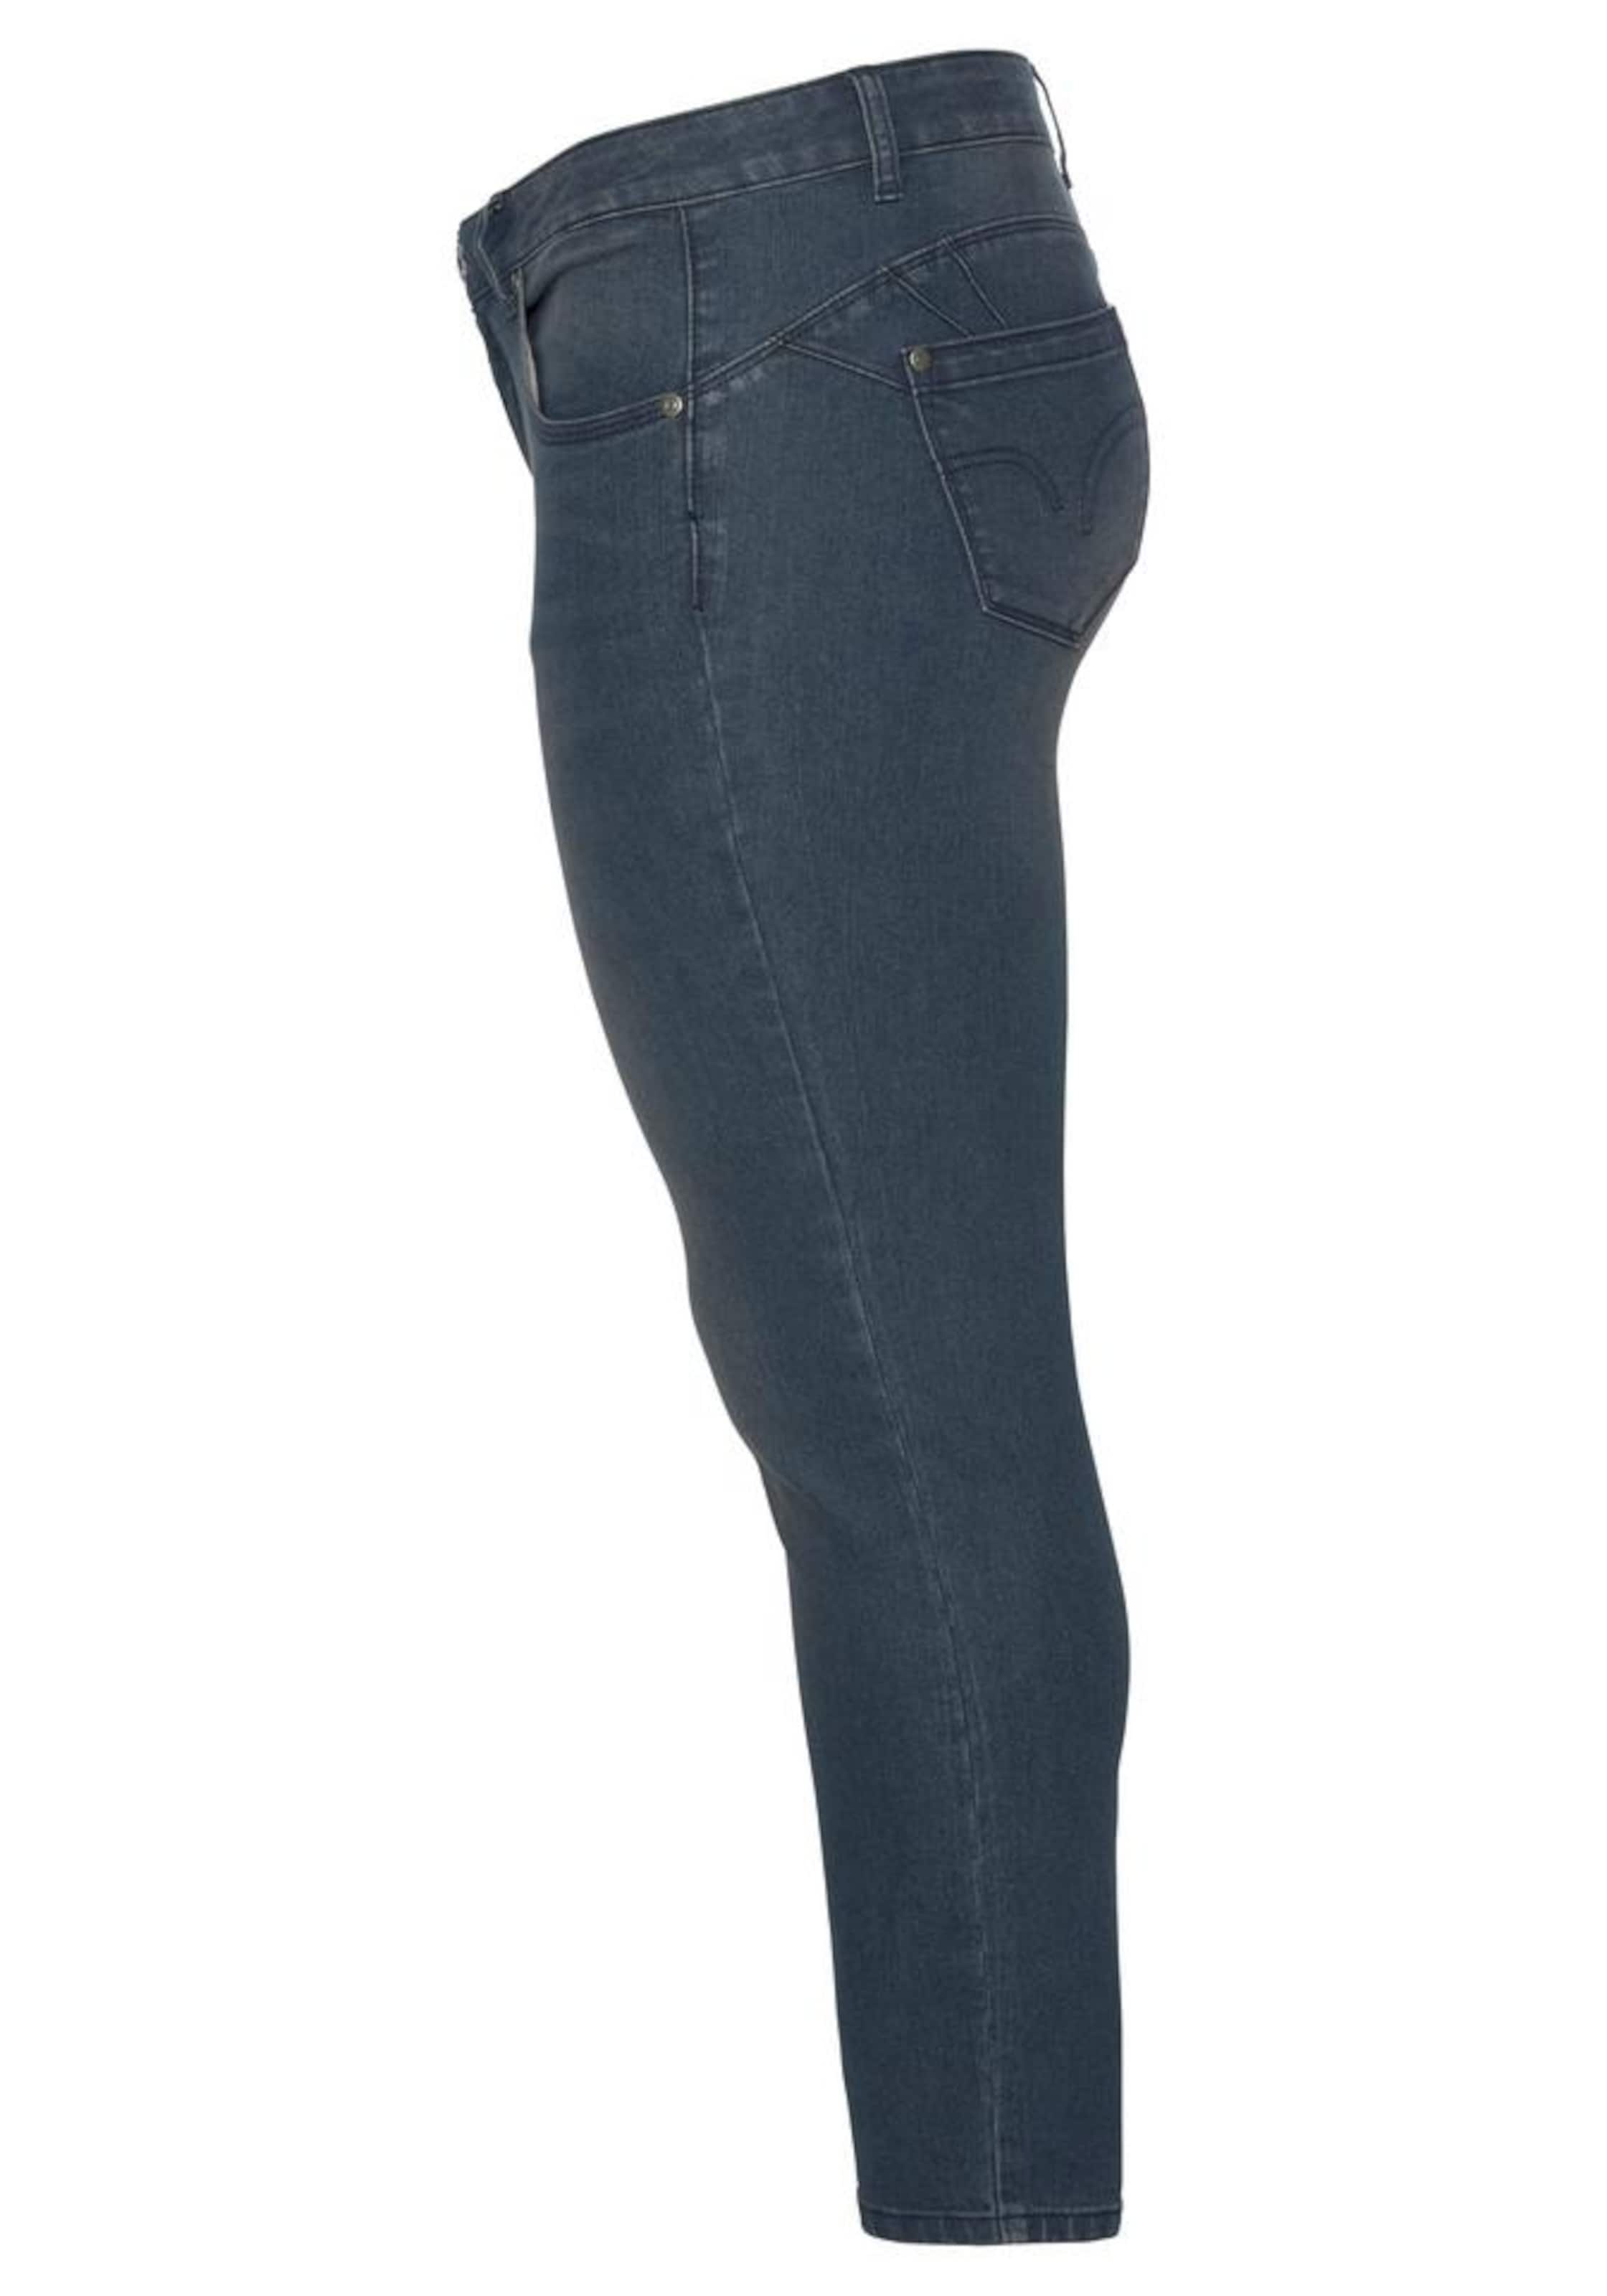 Dunkelblau Jeans 'shaping' Jeans 'shaping' In Arizona Arizona Jeans Dunkelblau Arizona In 1TlKc3FJ